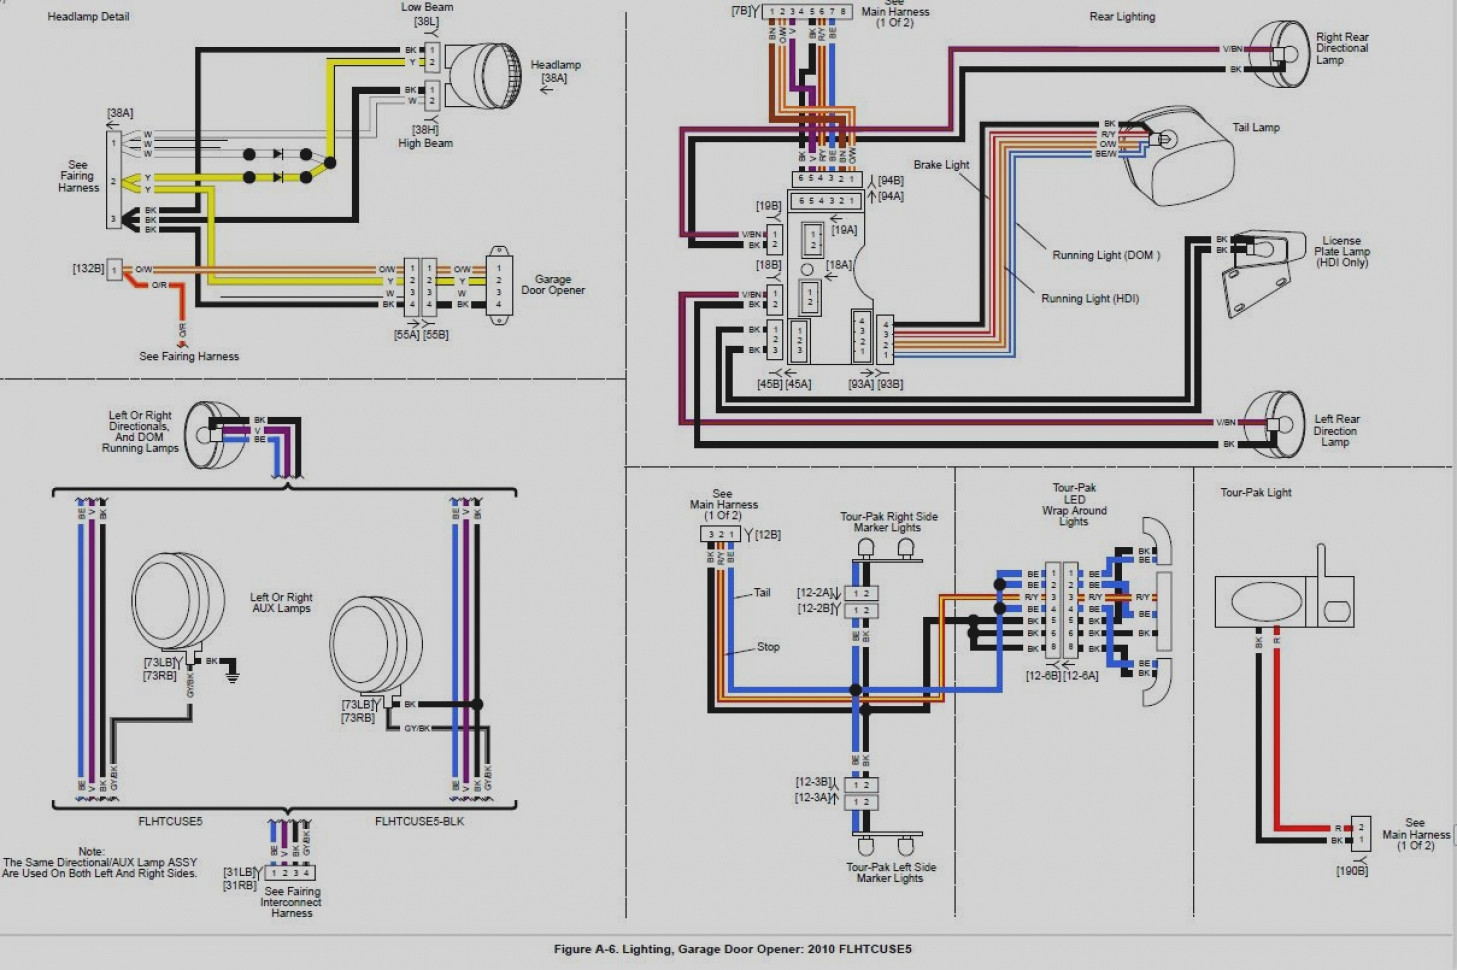 chamberlain garage door sensor wiring diagram | free ... electric garage door opener wiring diagram #1